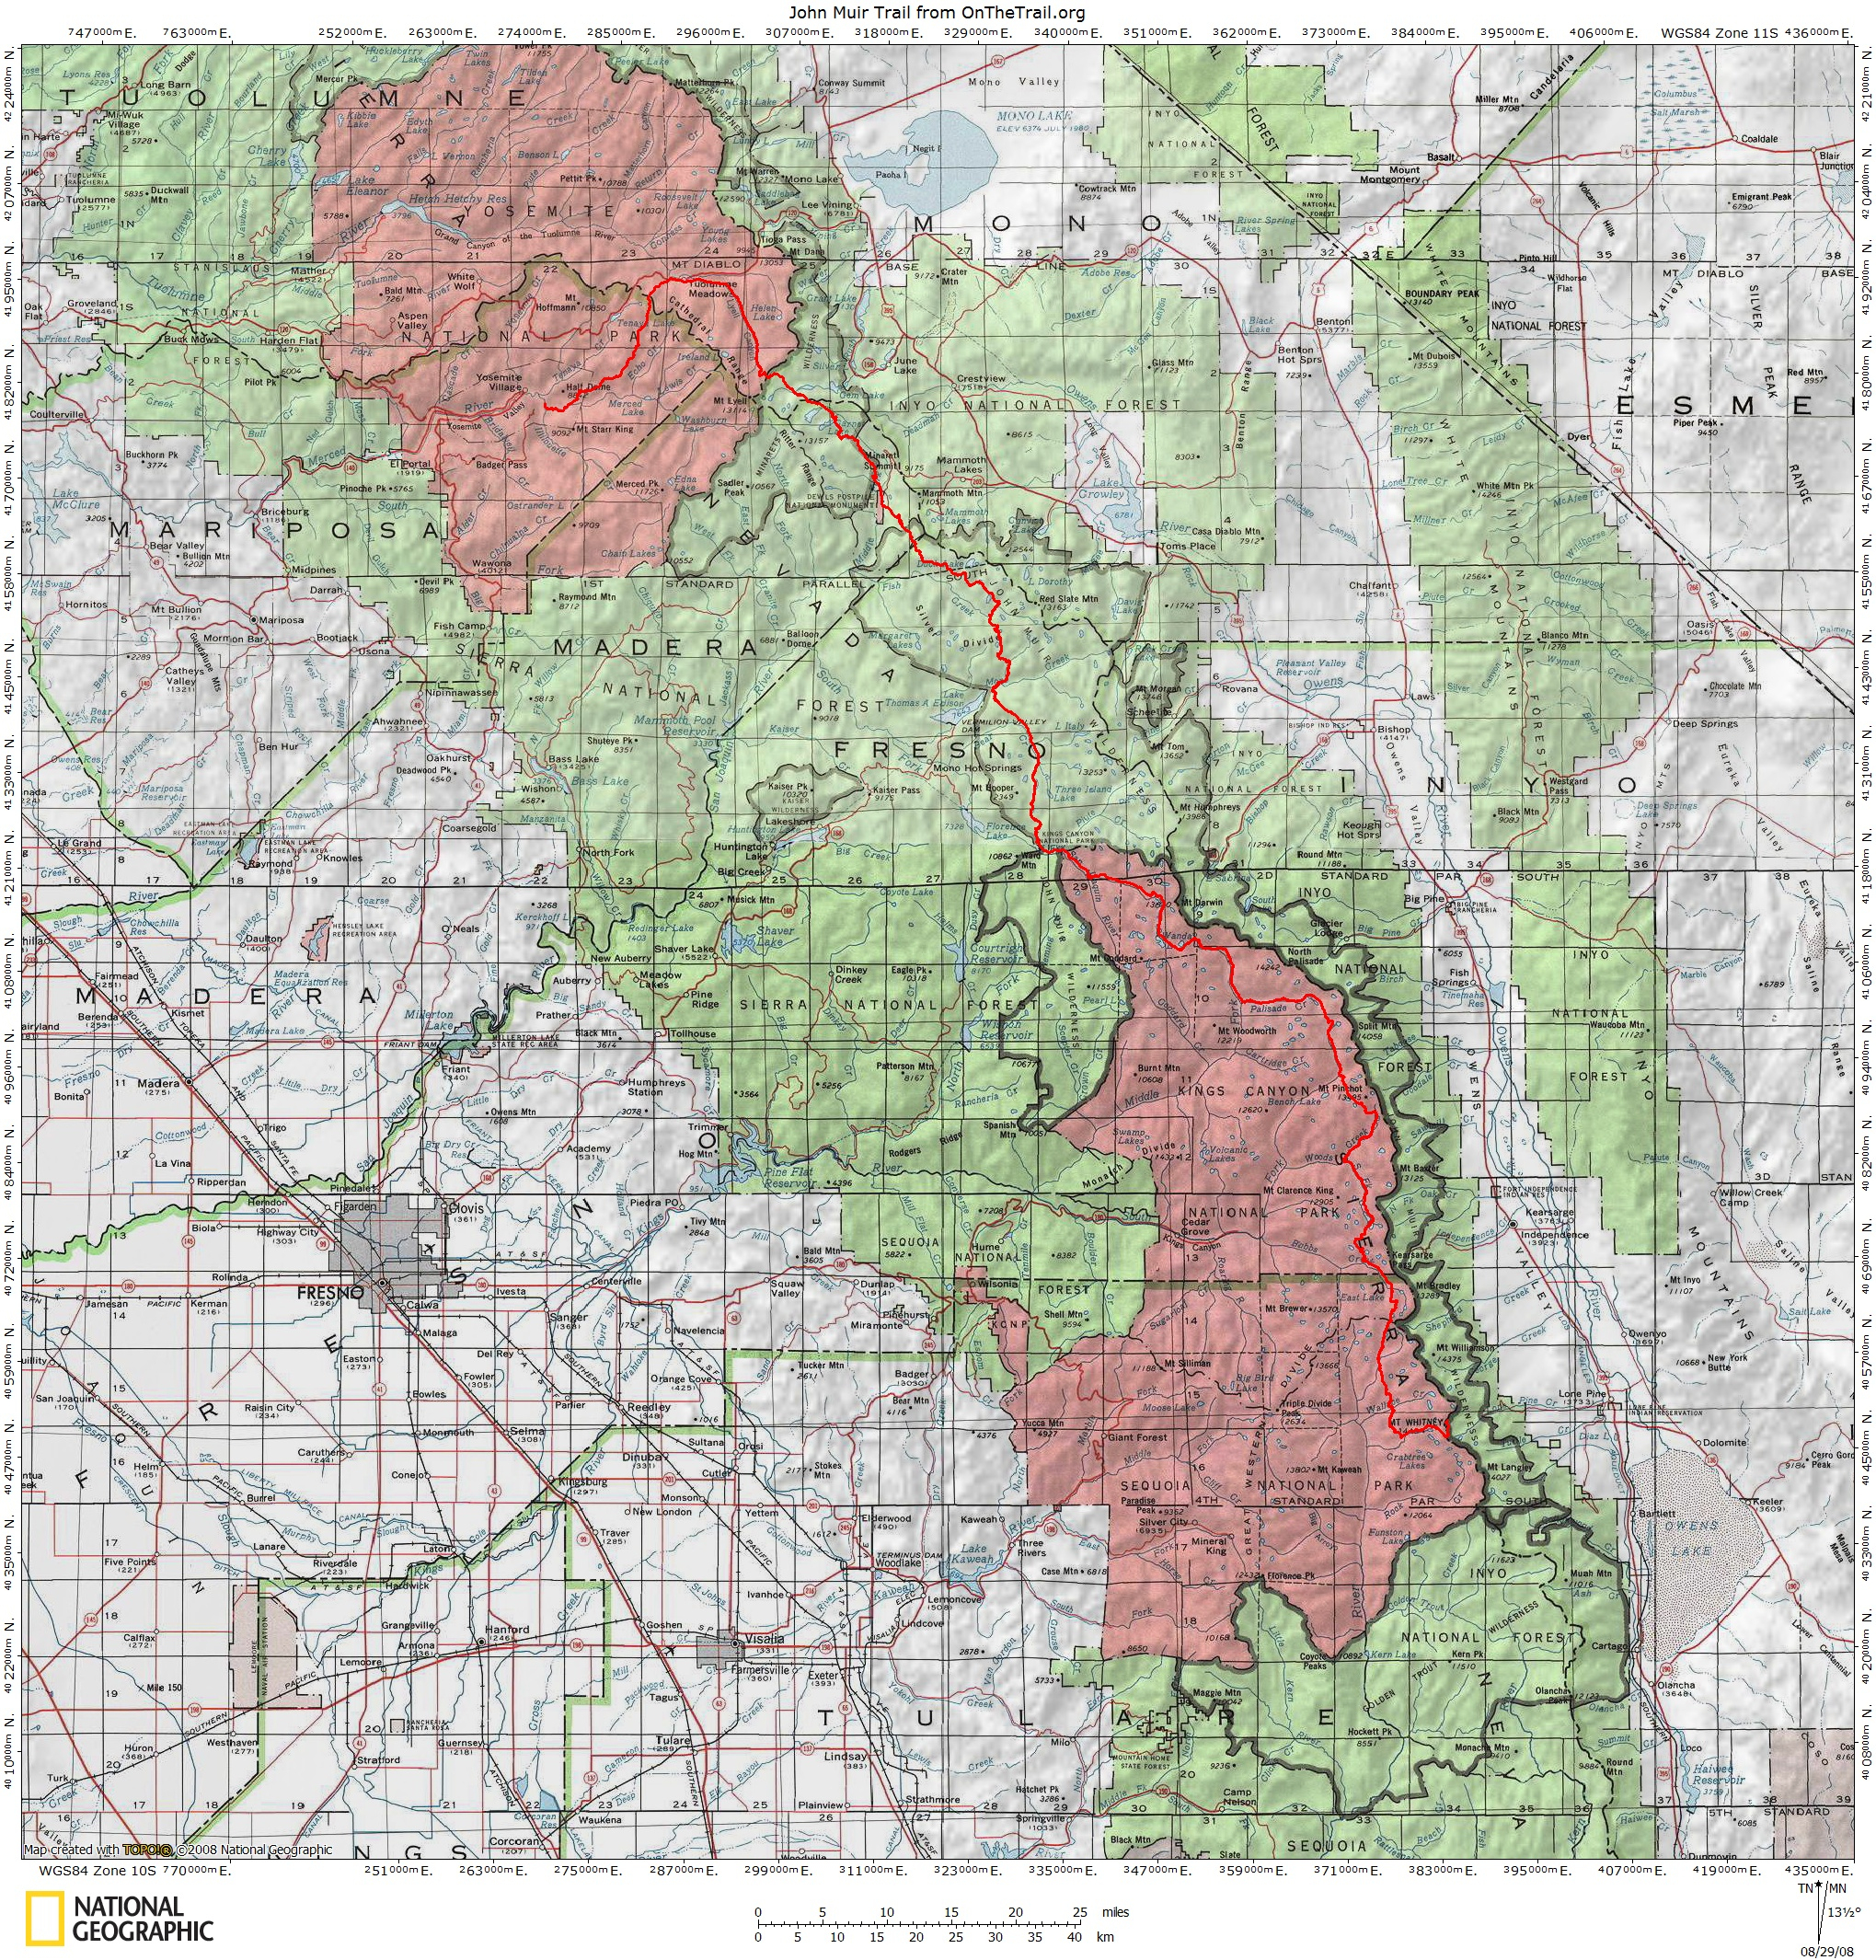 Jmt Topo Maps | Onthetrail - On The Trail Guide To The Outdoors - Free Printable Topo Maps Online